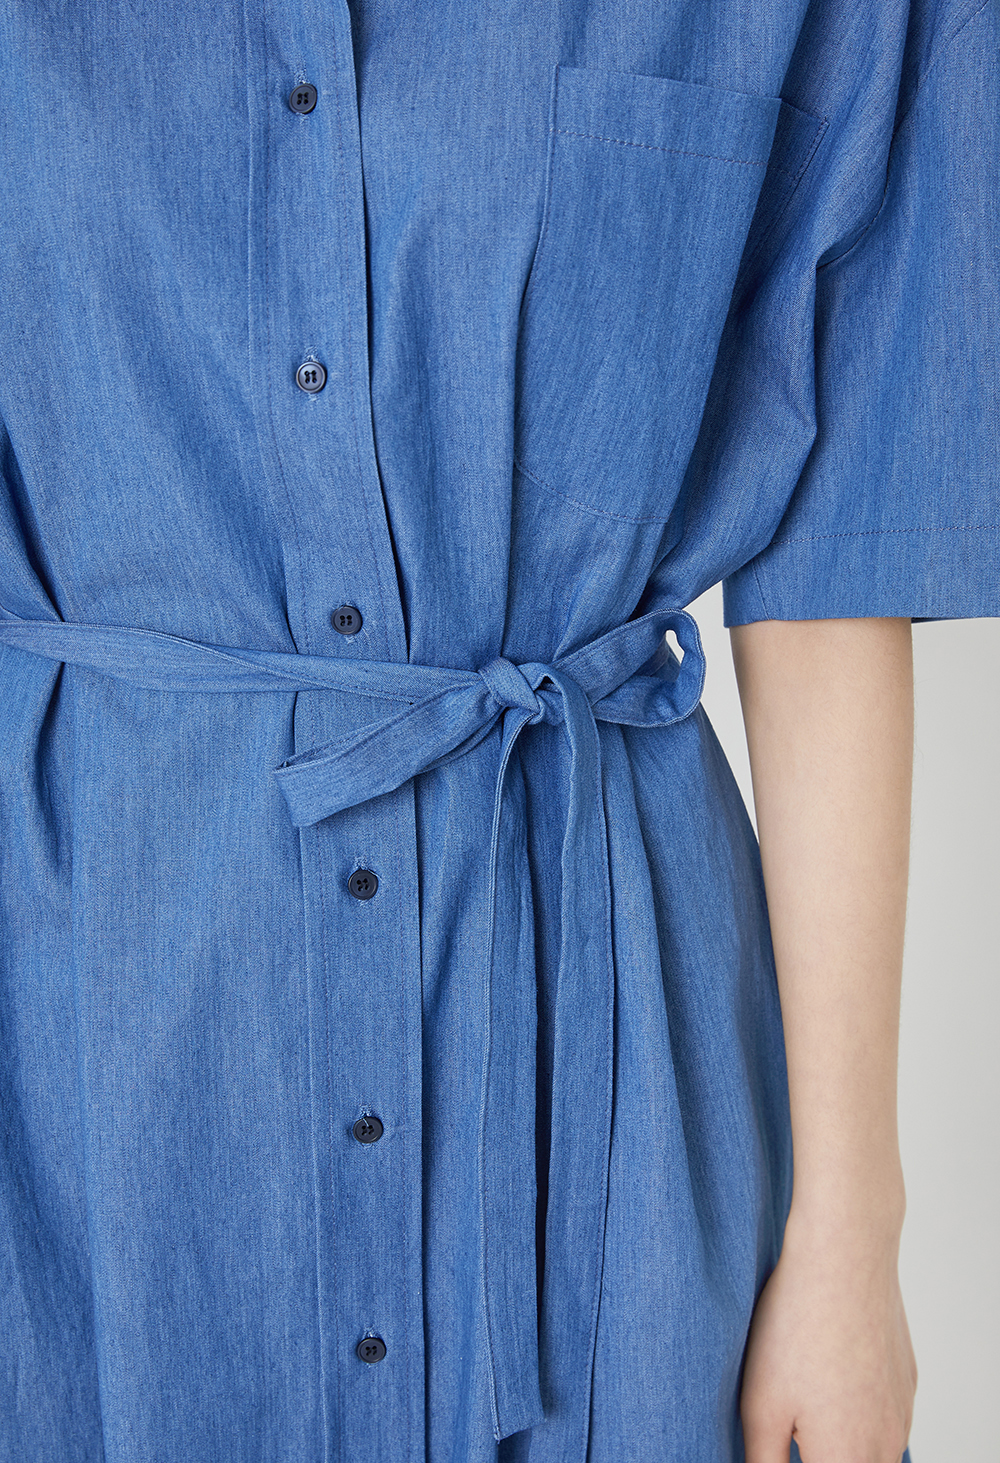 Denim shirt long dress